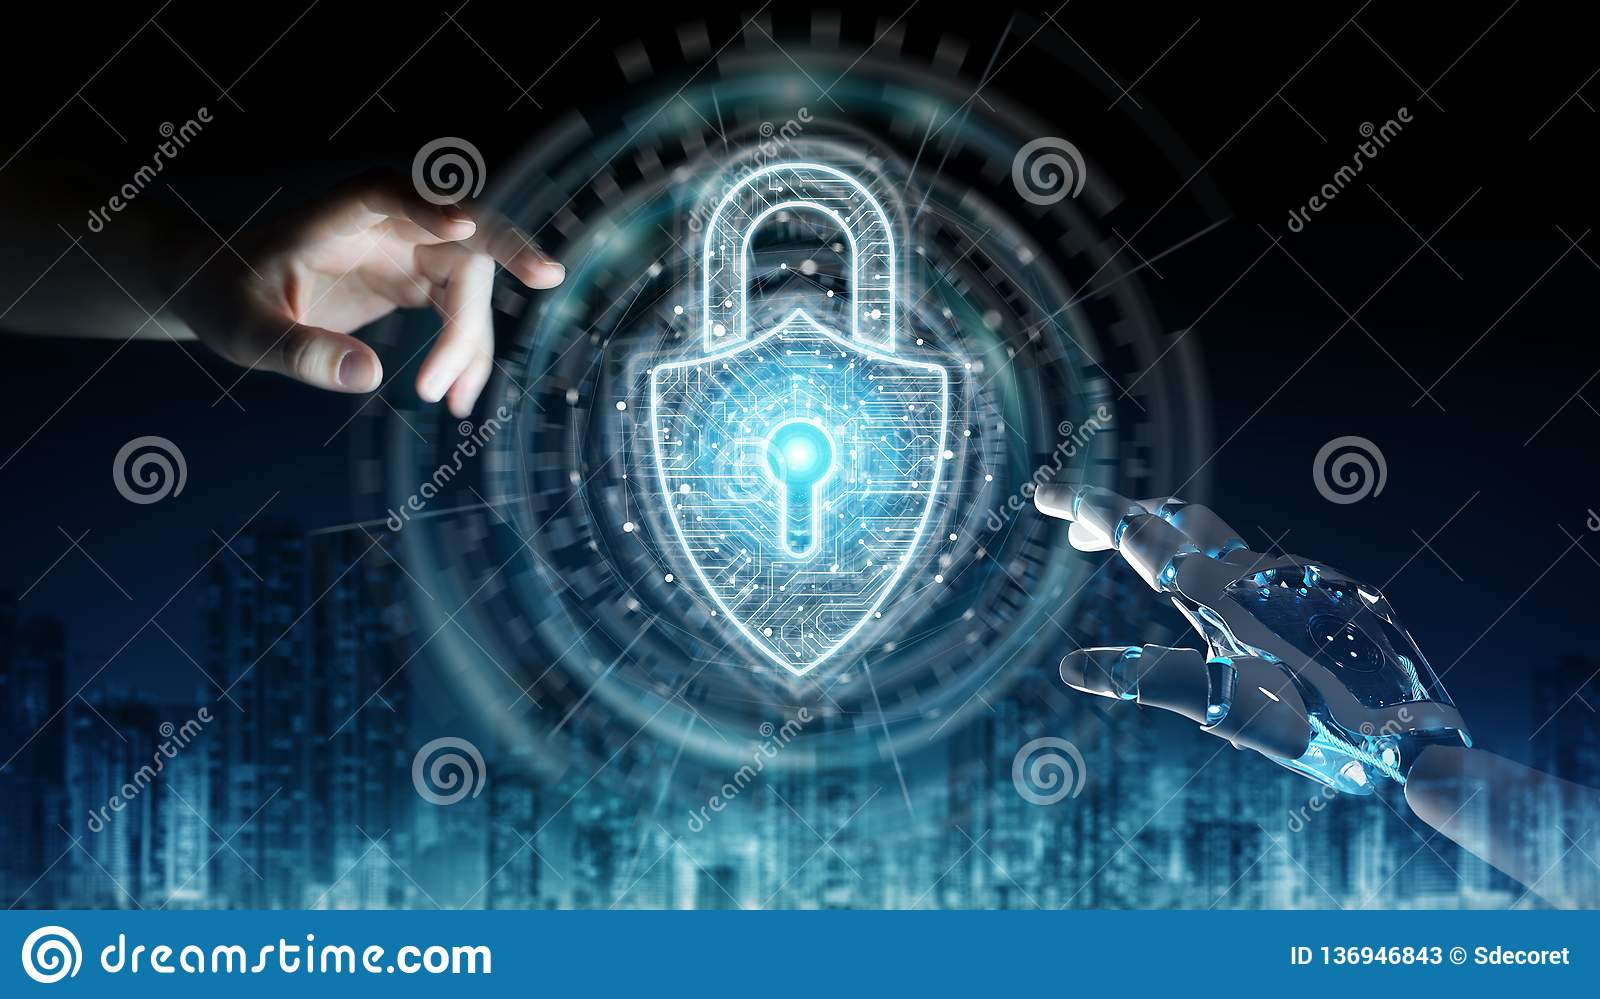 Robot hand and human hand touching digital padlock security 3D rendering